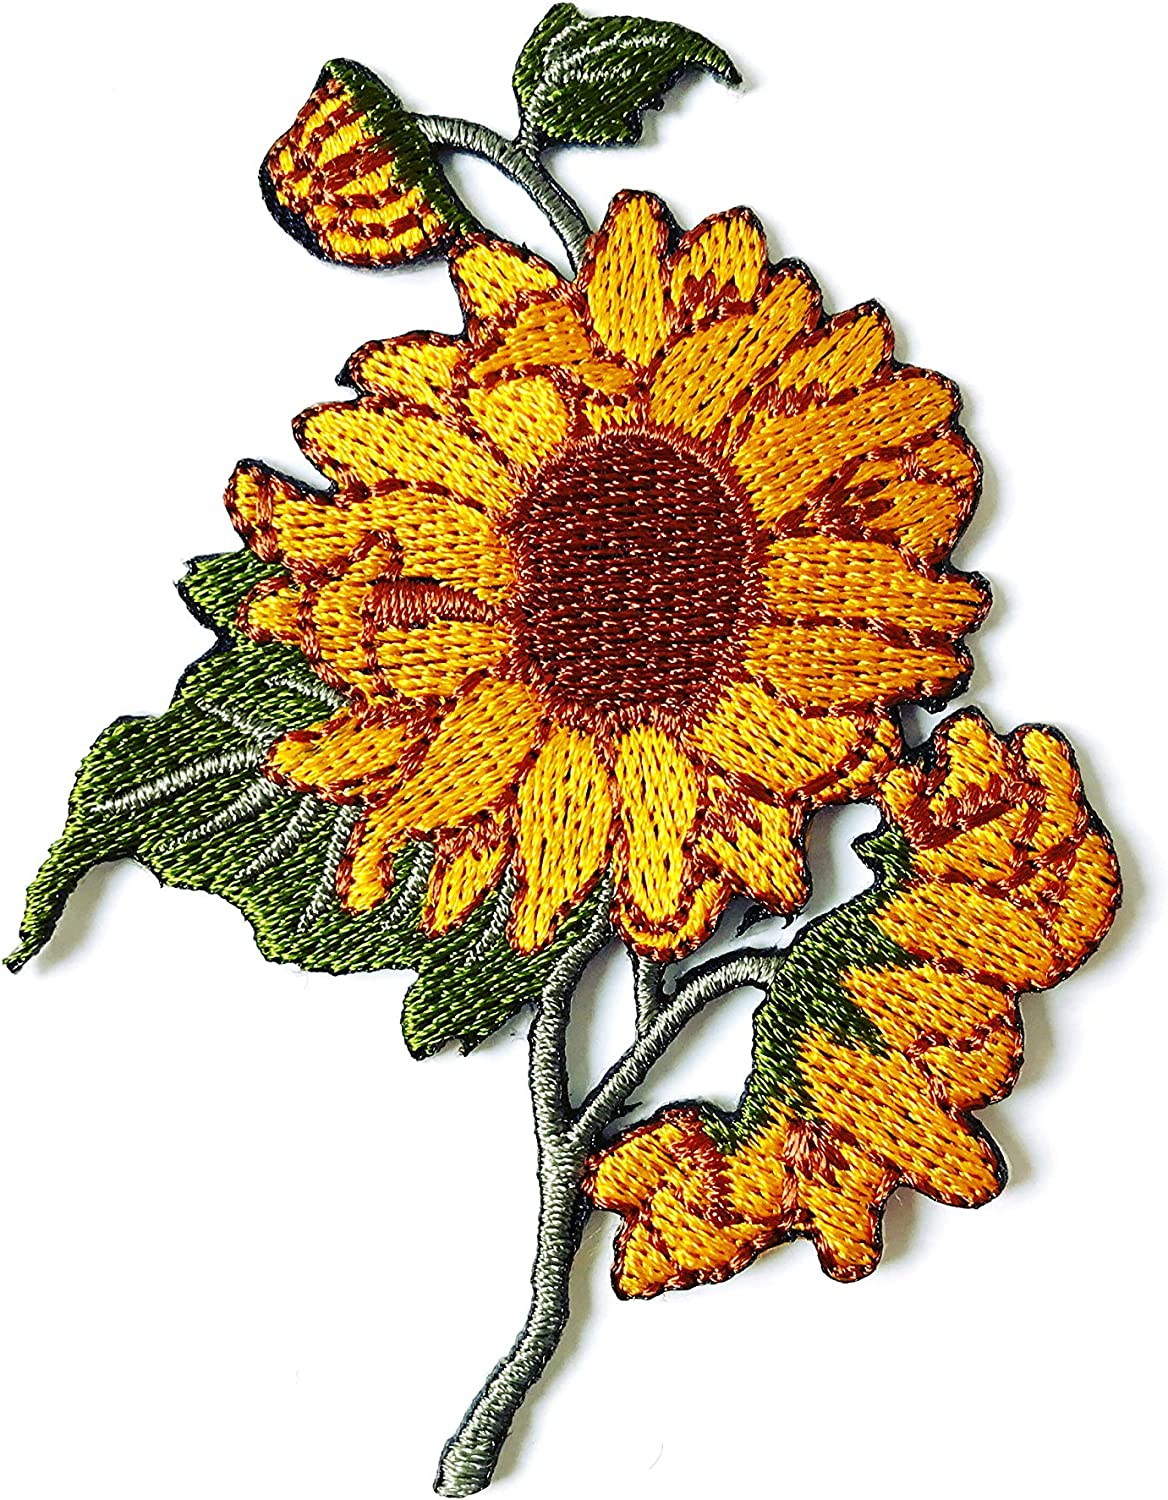 TH Sunflower Garden Plant Sunflower Flower Granny Chic Retro Boho Embroidered Applique Sew Iron on Patch for Hat Jackets Bags Jeans T-Shirt Backpacks Costume